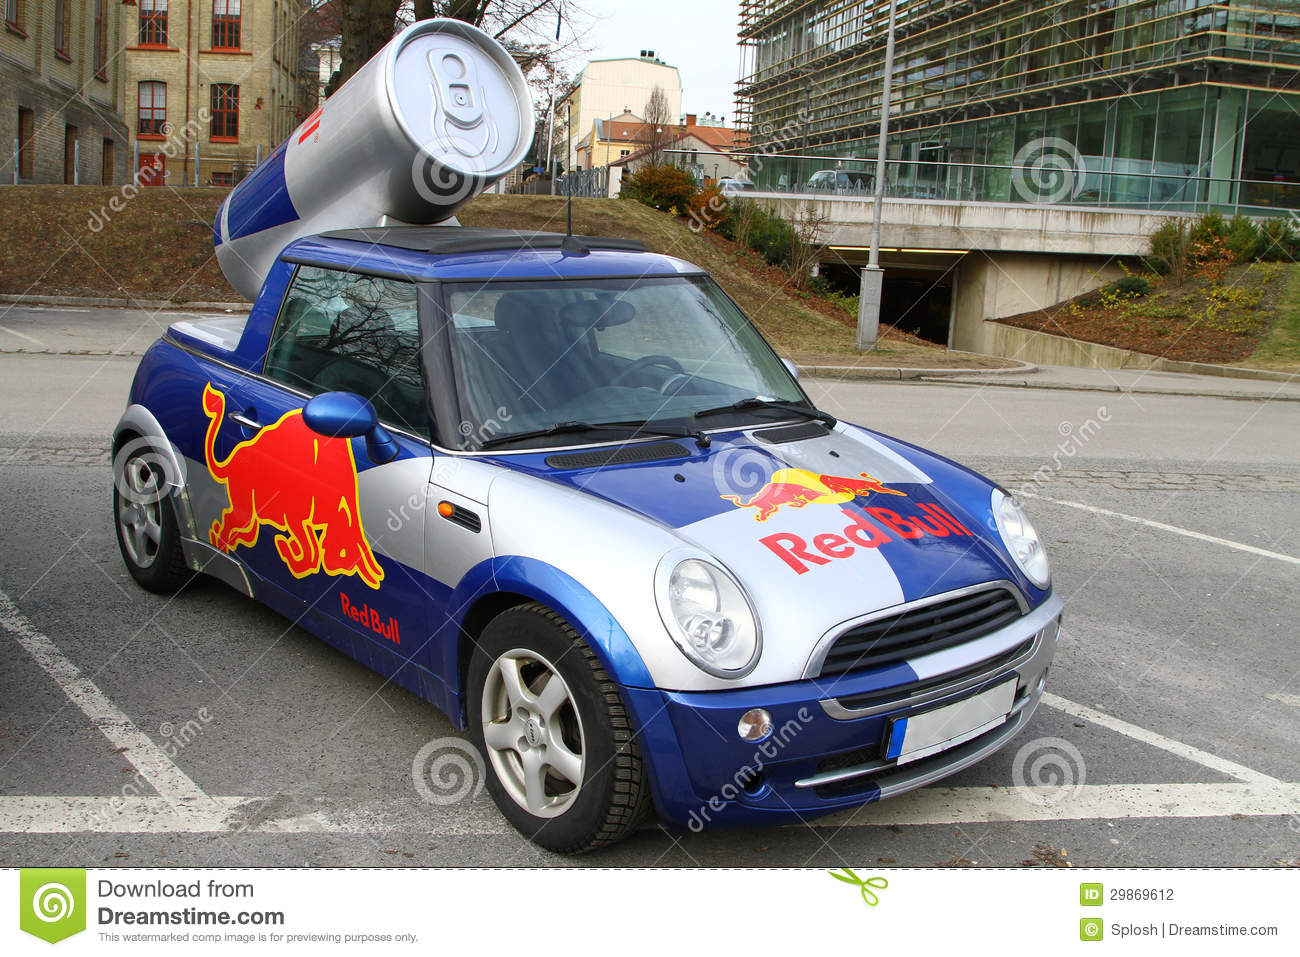 Stock Photography Red Bull Mini Cooper Publicity Car Can Red Bull Drink Behind Used Promotion Red Bull Events Image29869612 in addition Best Ever Hot Dog Toppings additionally Photo likewise Oscar Mayer Bacon Nutrition Label in addition New Burger King Outlet In North Pattaya. on oscar mayer food truck